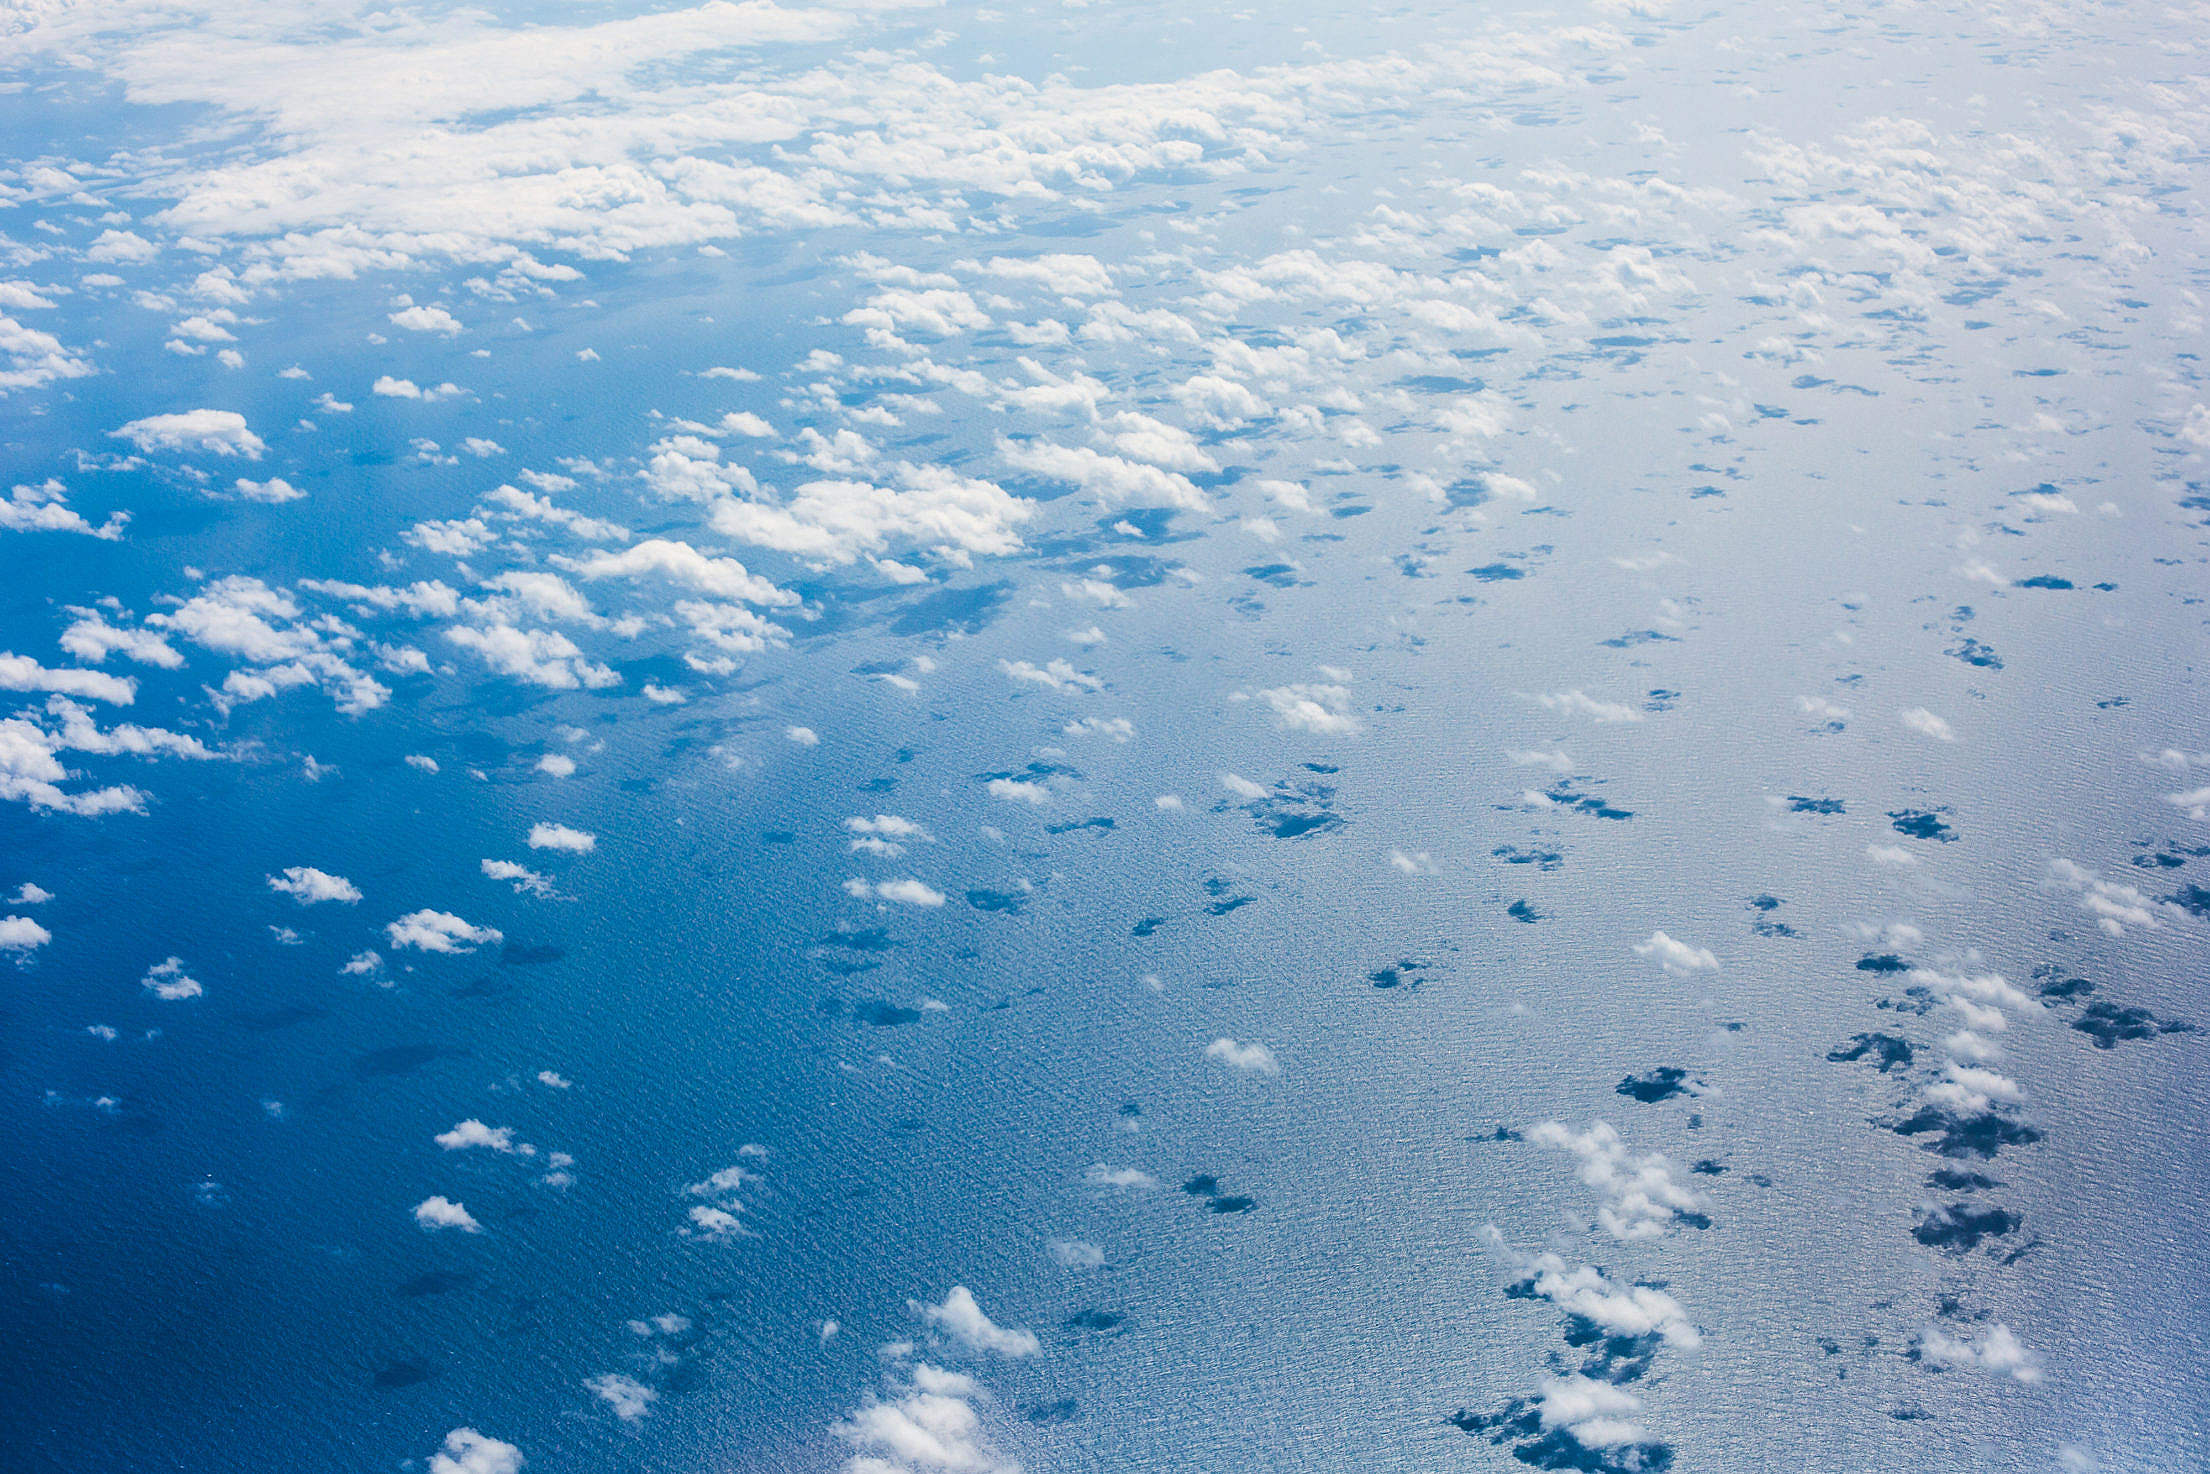 Clouds over the Pacific Ocean from an Airplane Free Stock Photo